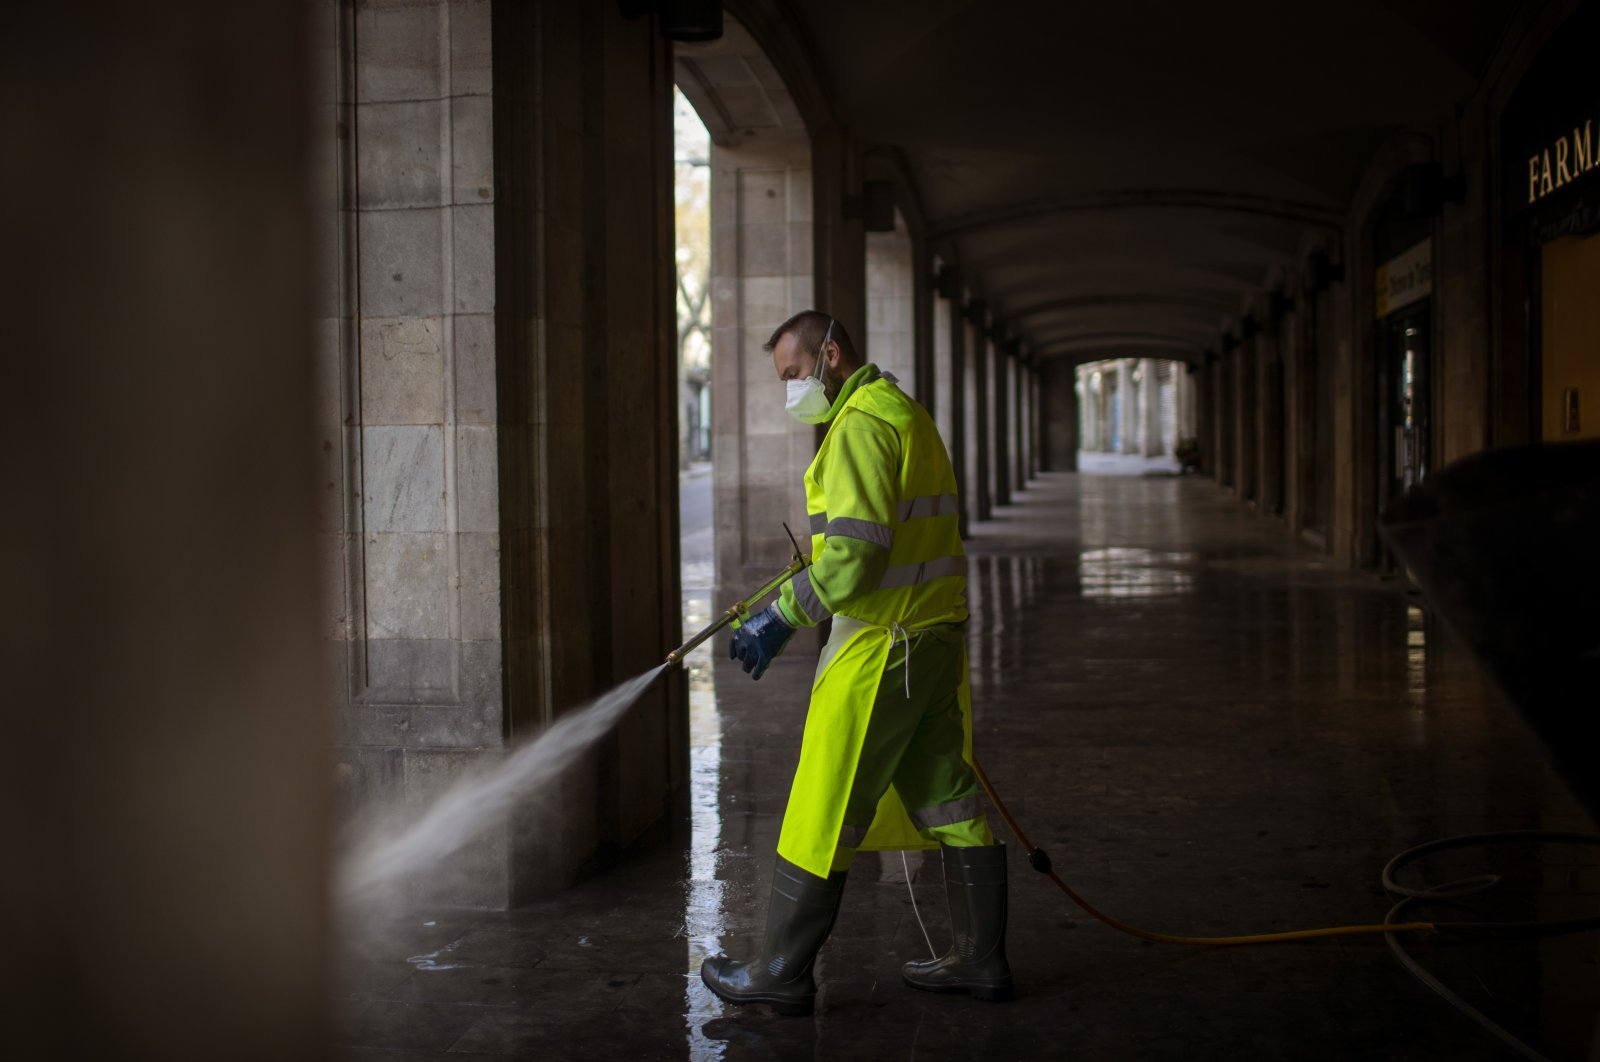 A worker disinfects the street to prevent the spread of the coronavirus in Barcelona, Spain, Thursday, March 19, 2020. (AP Photo)